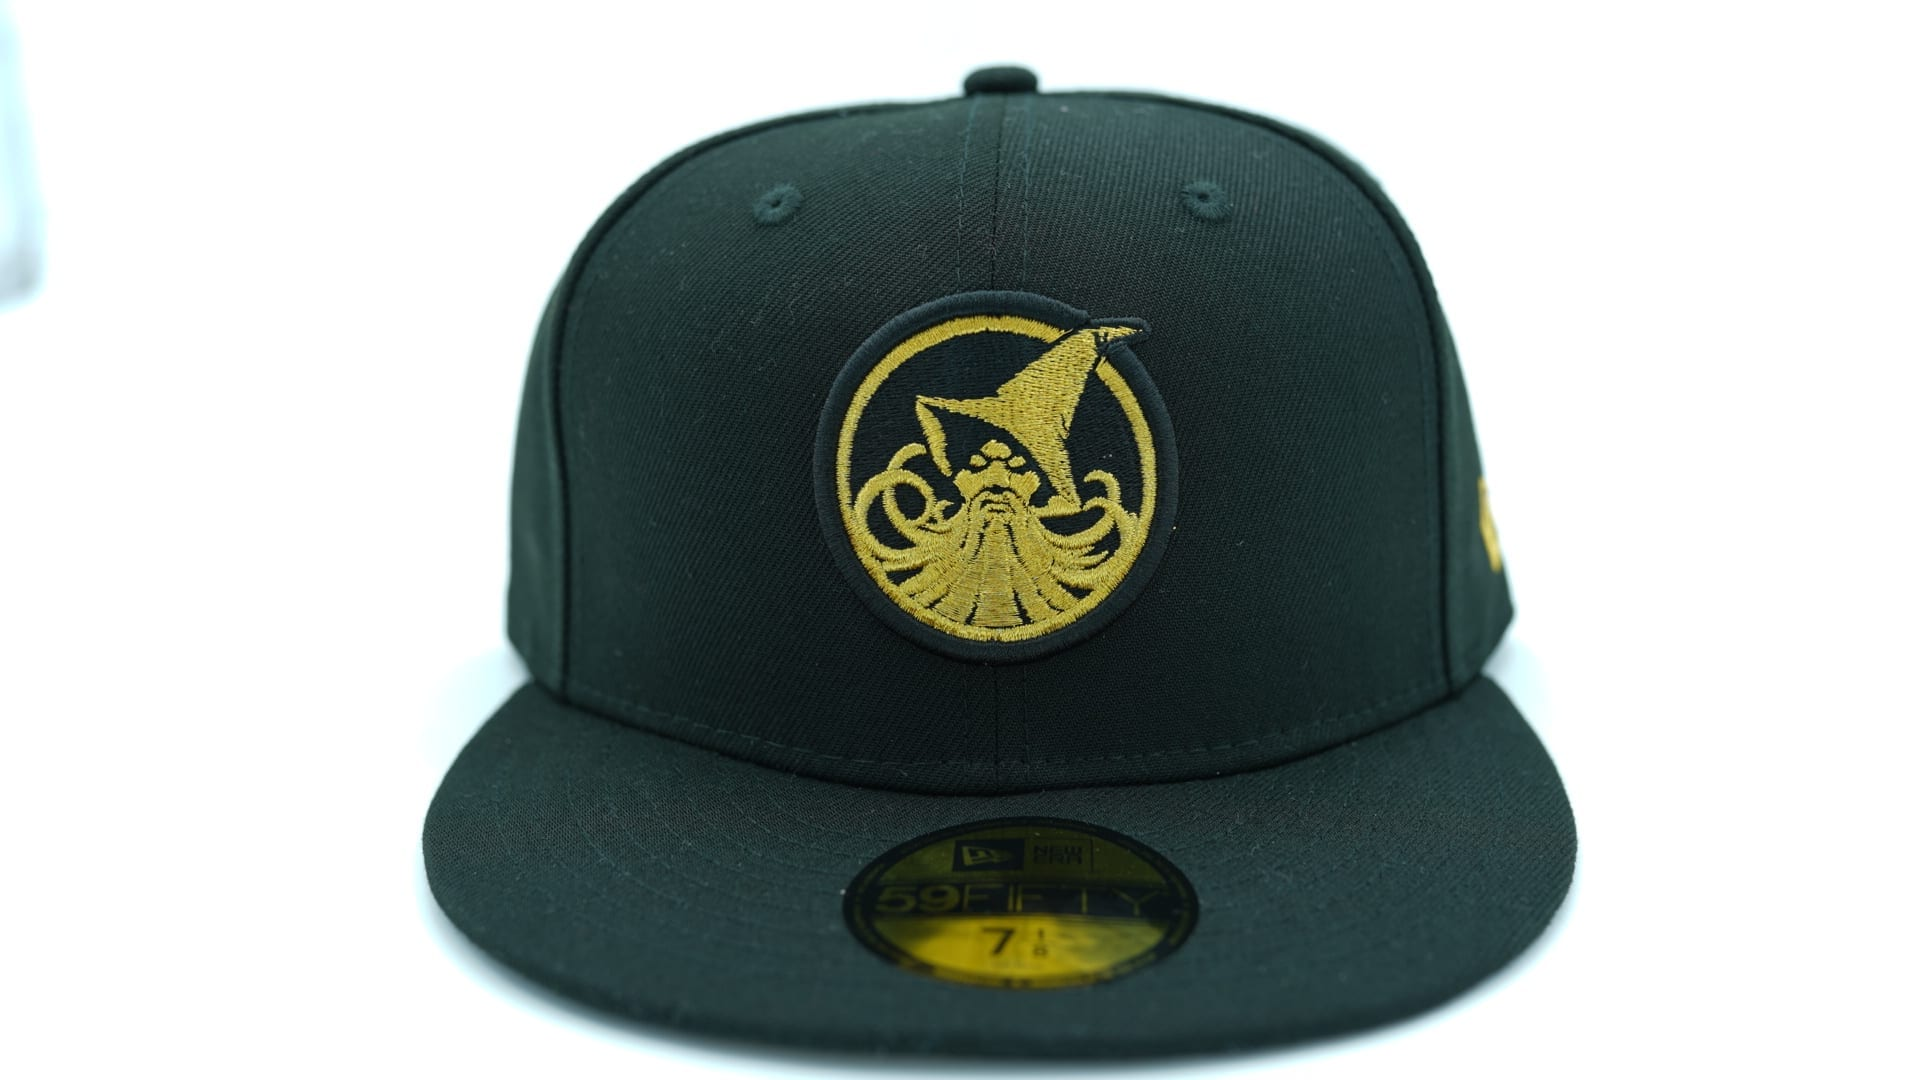 New York Yankees Derek Jeter Gold Standard 59Fifty Fitted Cap by NEW ERA x MLB x PACKER SHOES